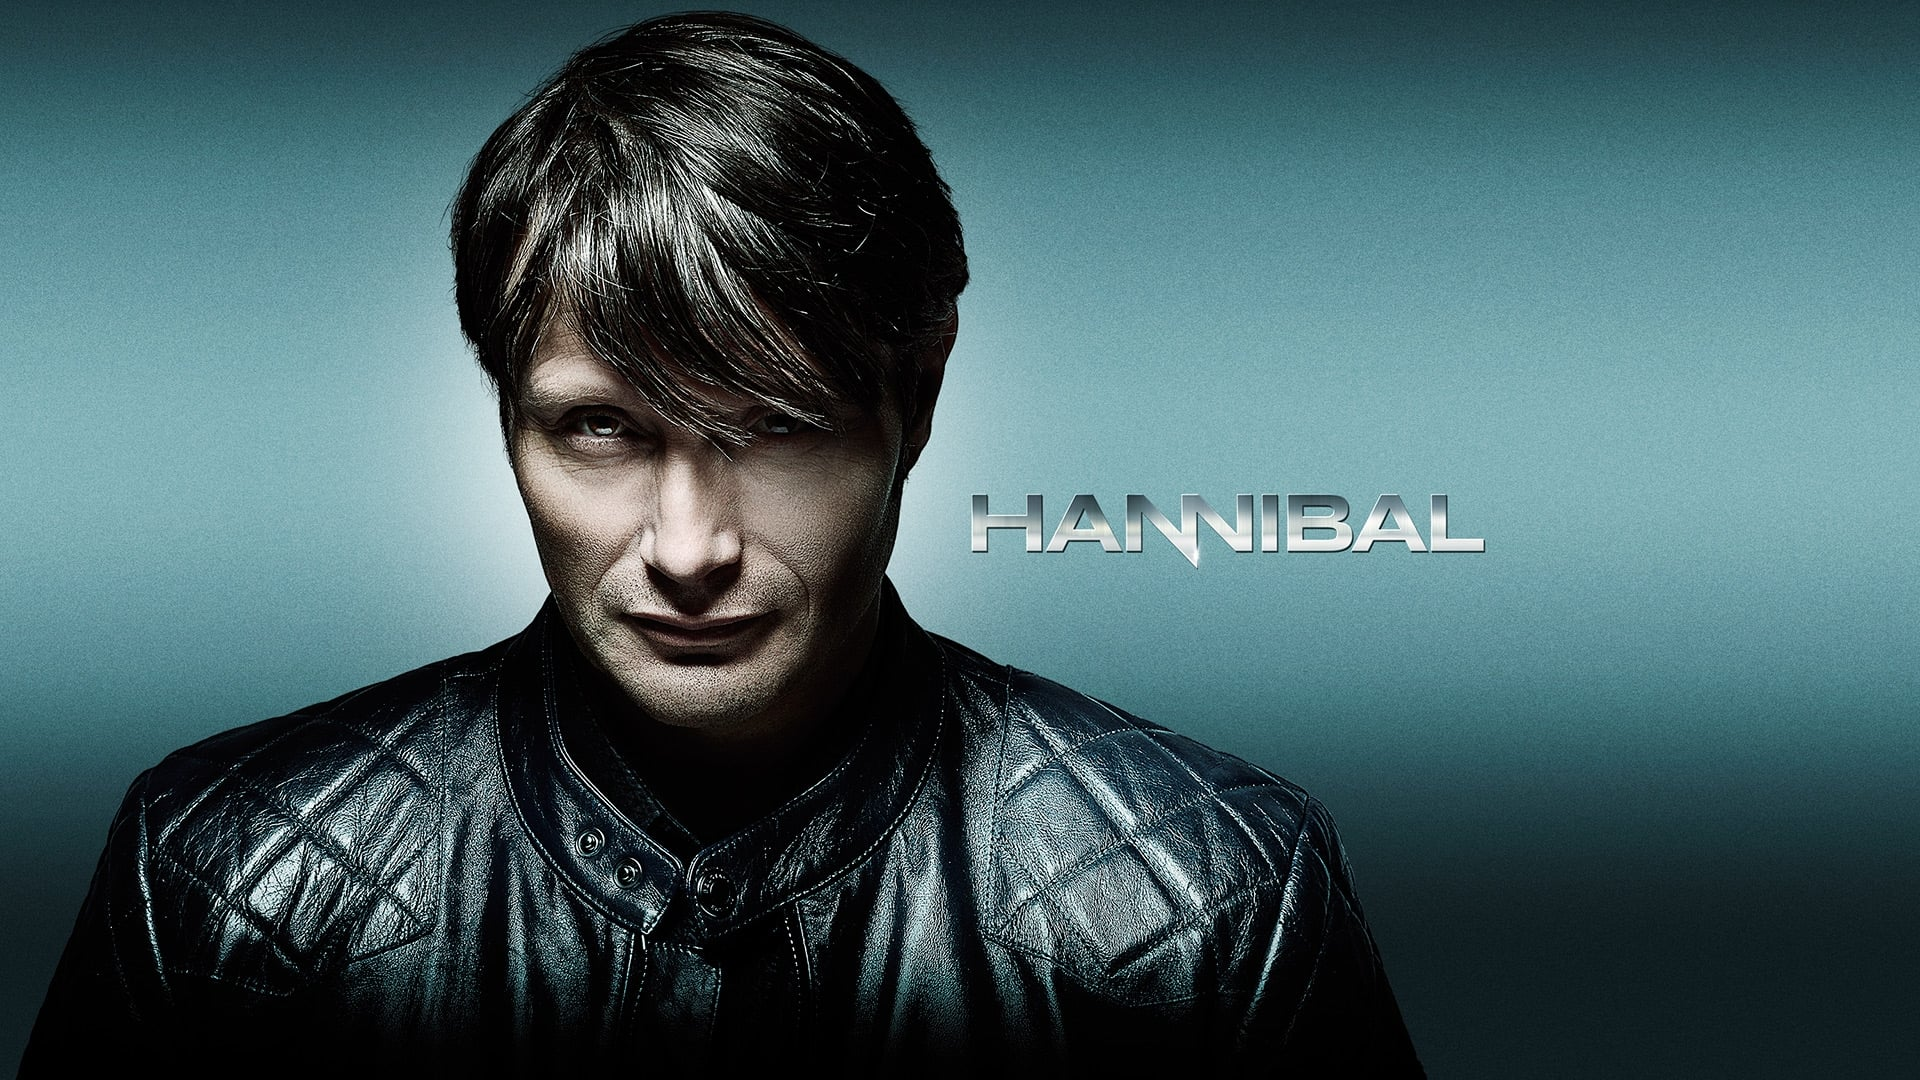 'Hannibal' season 2 premiere date and new poster